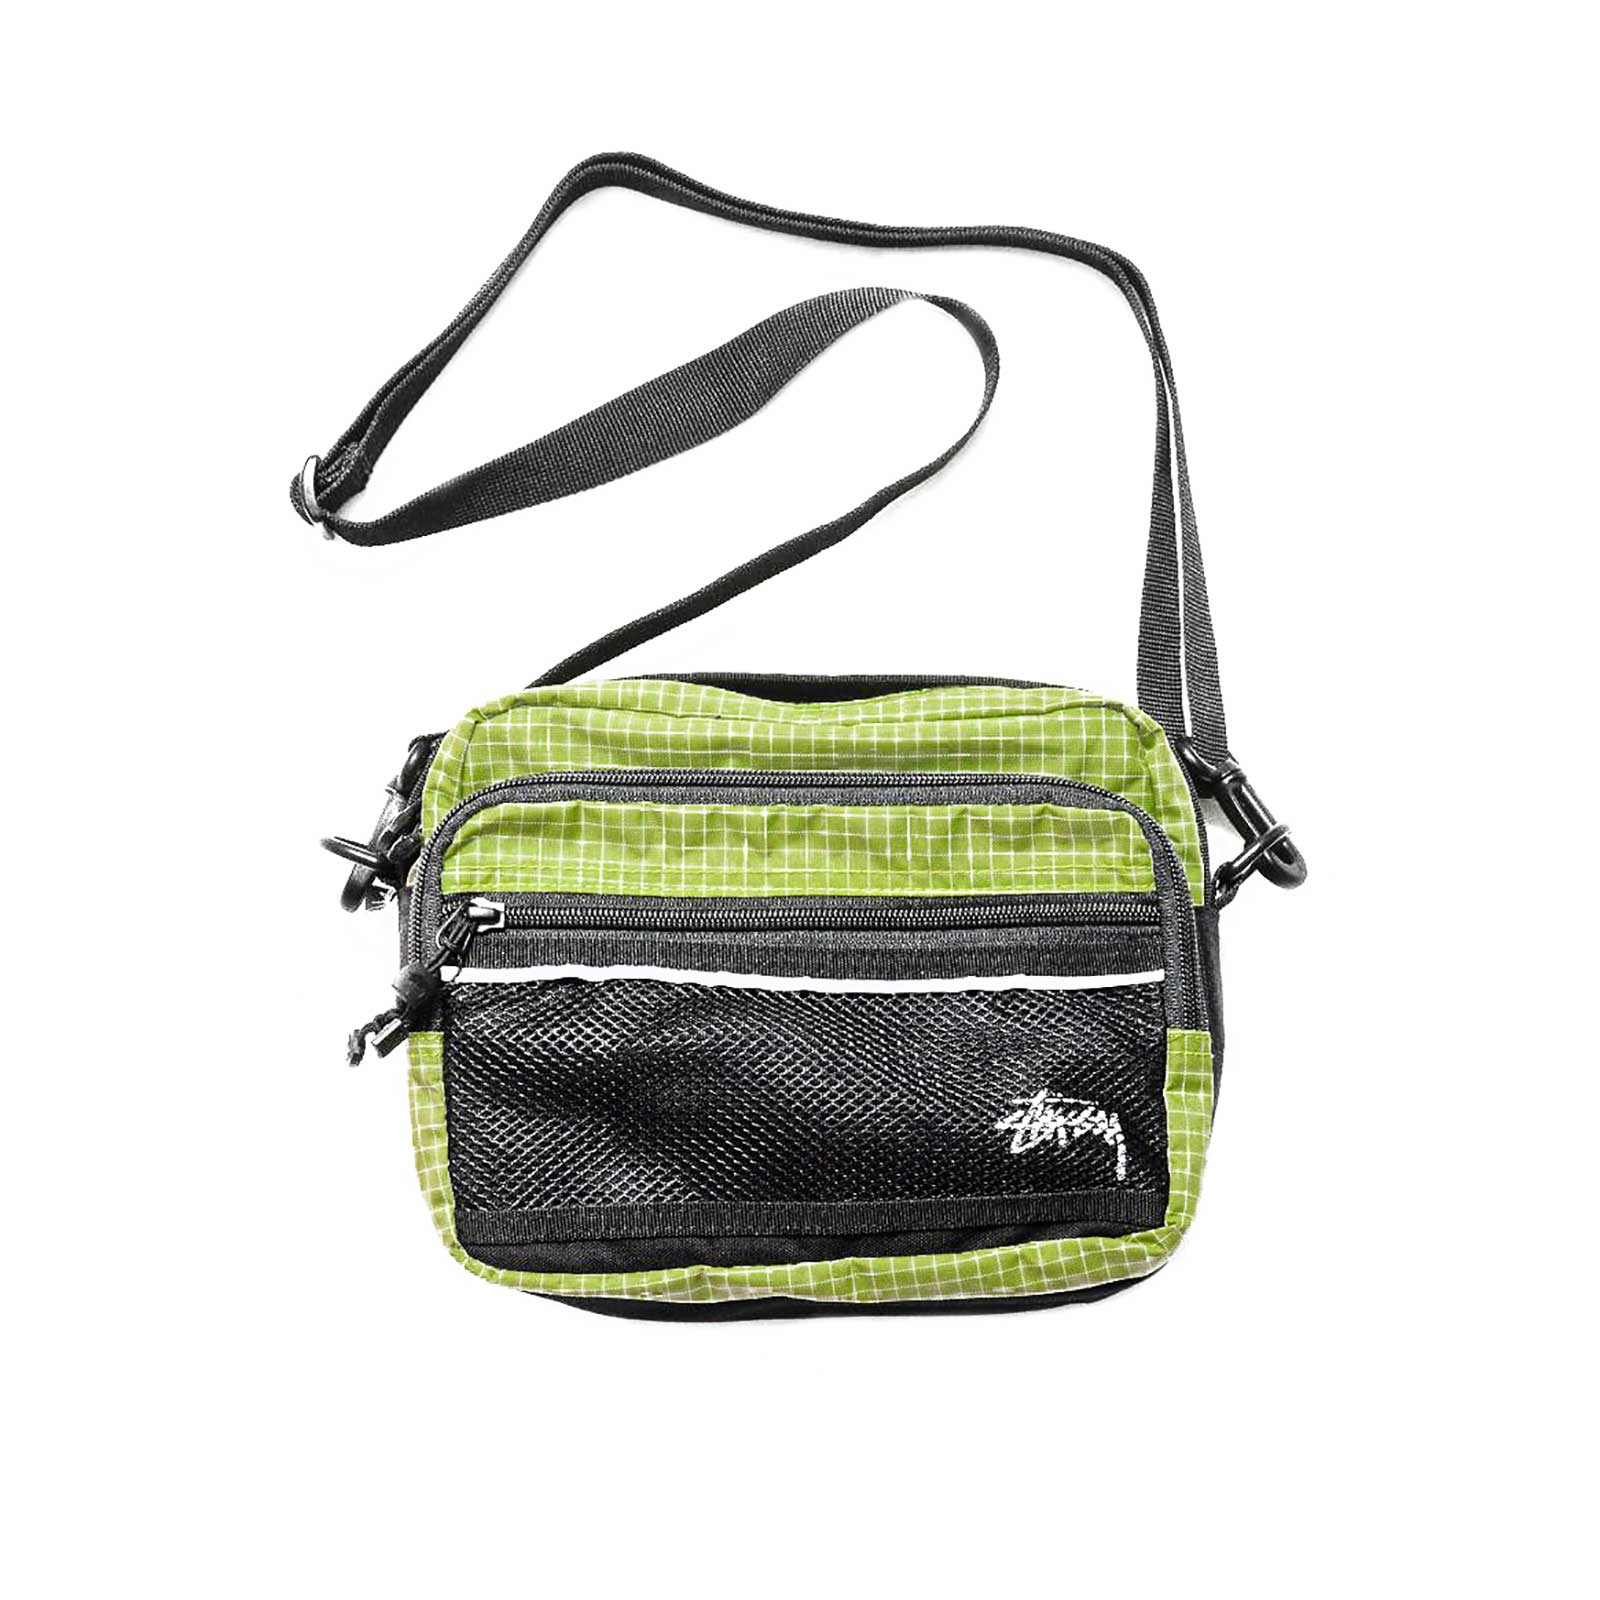 Stussy Borse A Tracoll Ripstop Nylon Shoulder Bag Lime Verde 6f73814f408a4